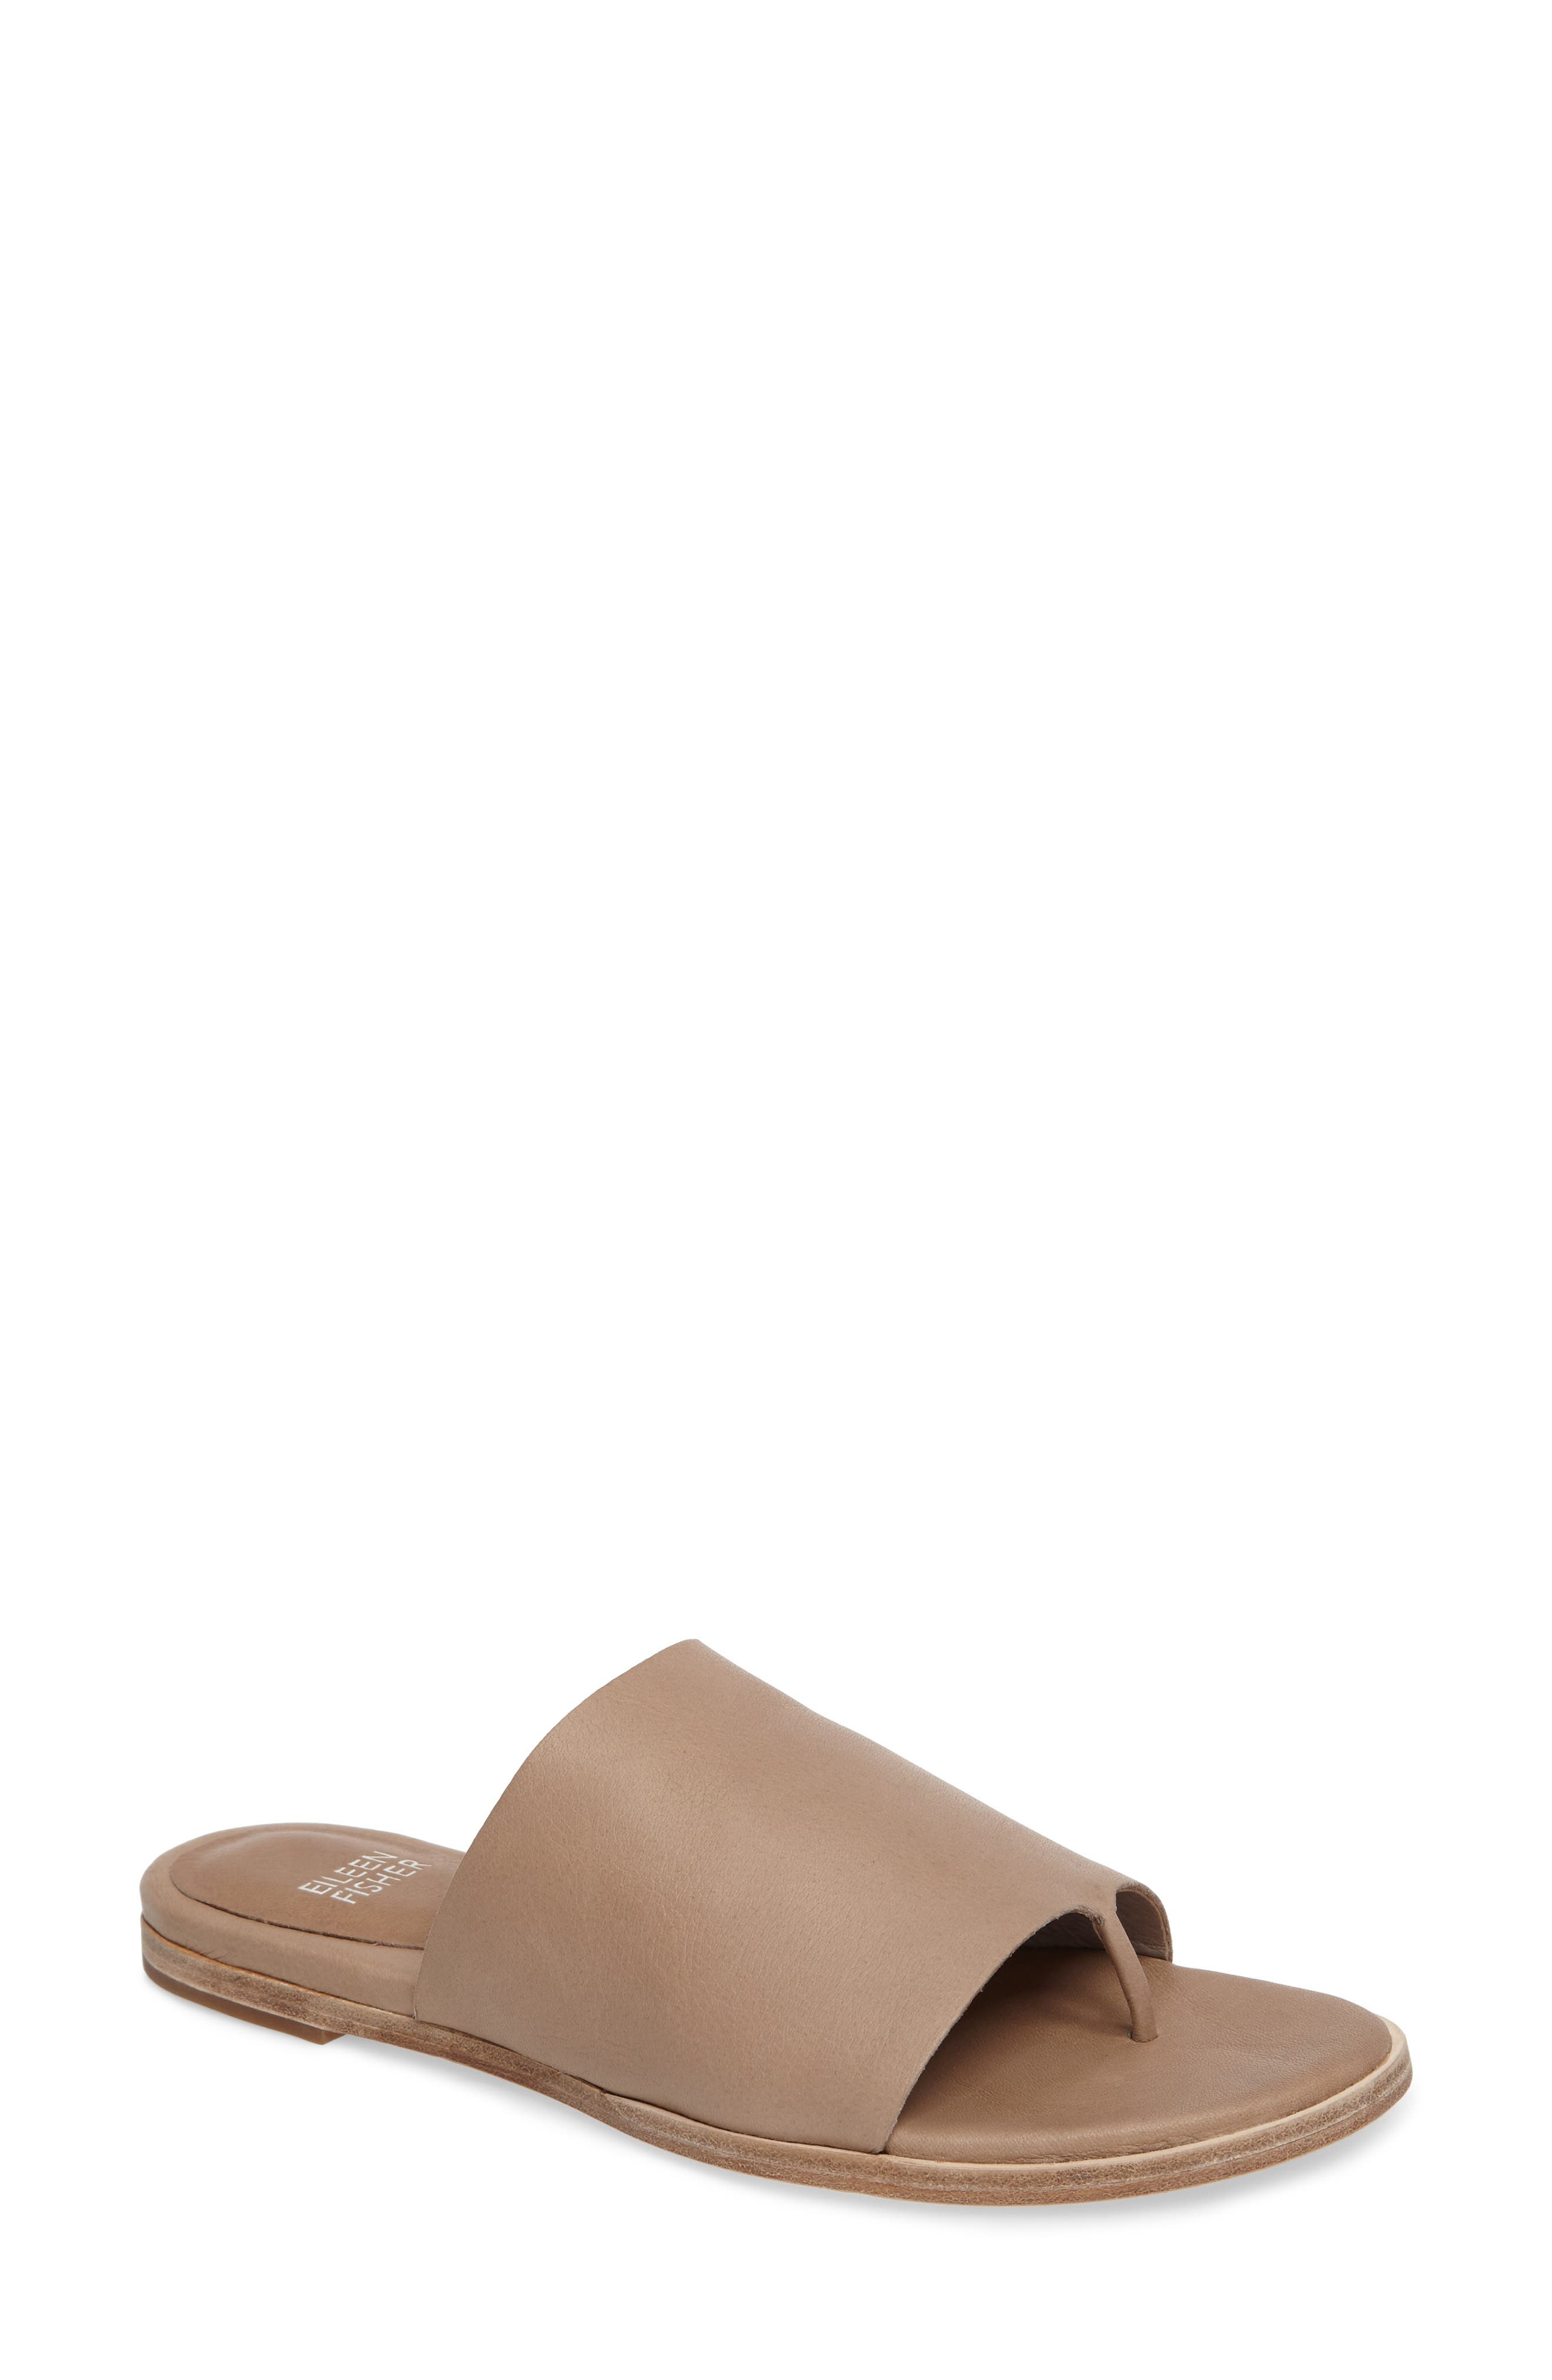 Alternate Image 1 Selected - Eileen Fisher 'Mere' Thong Sandal (Women)